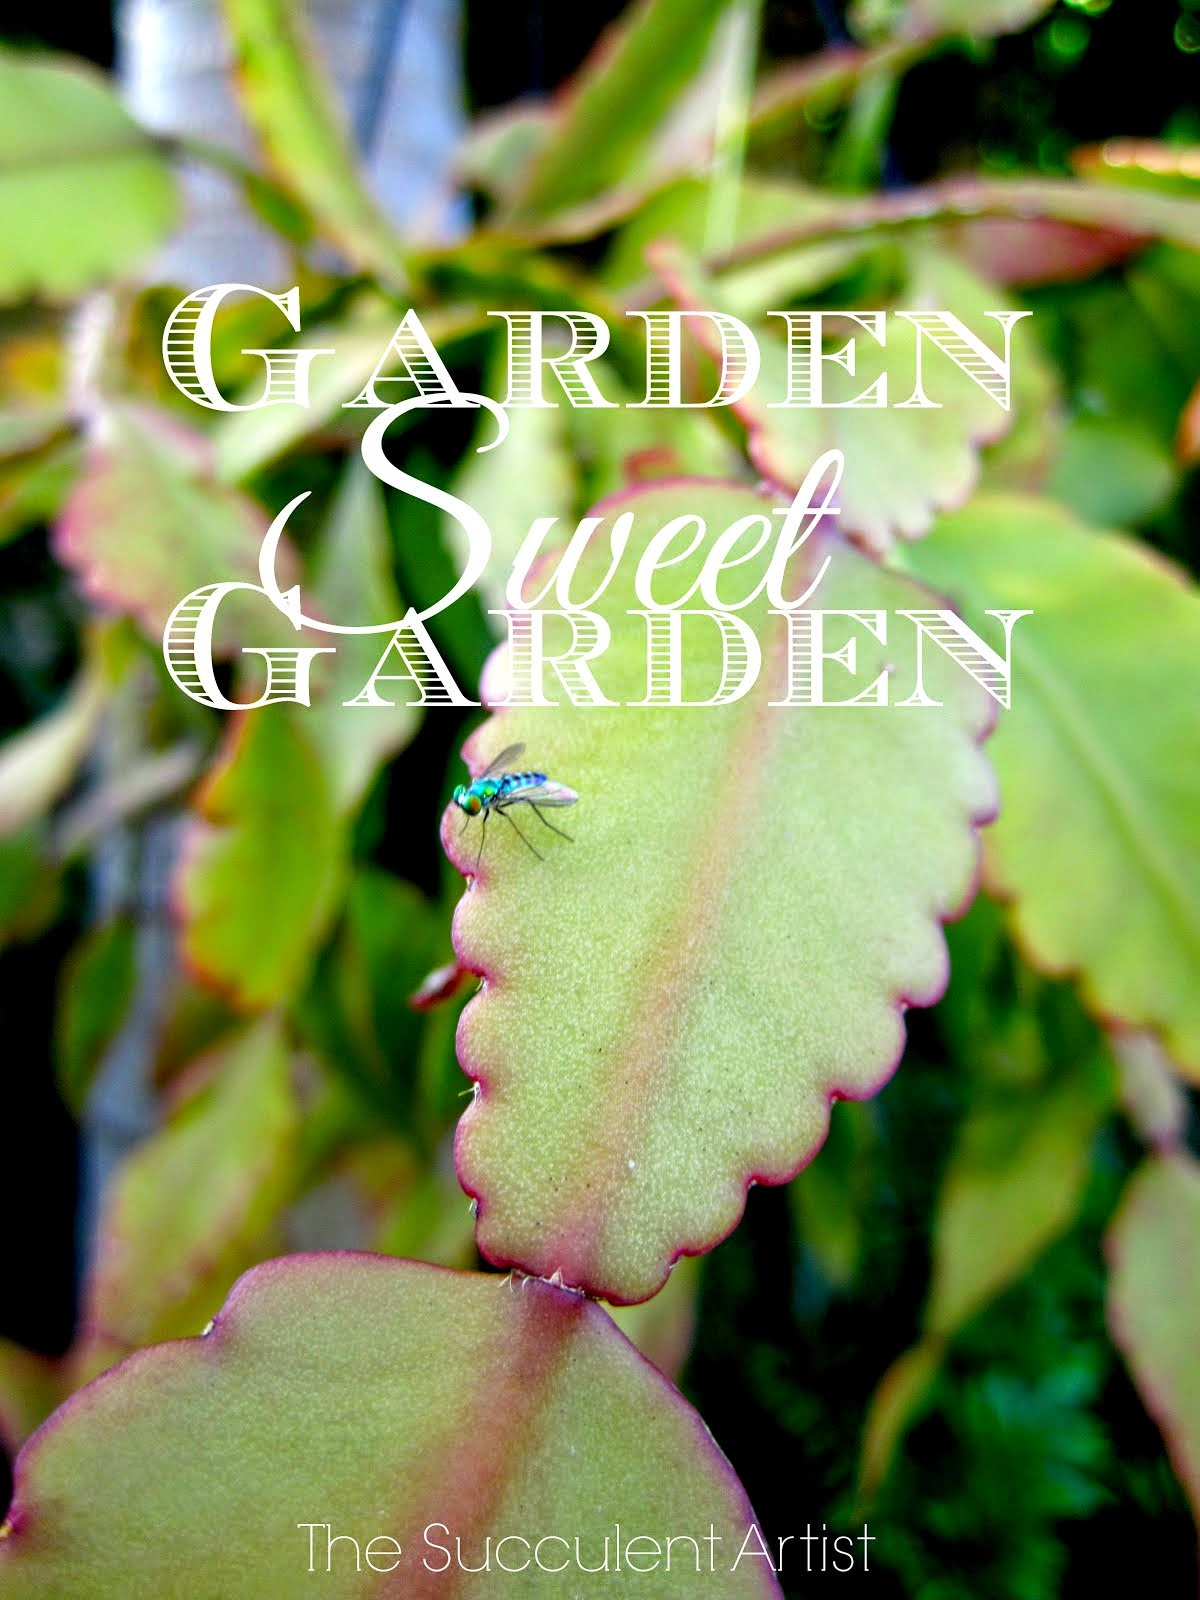 Garden Sweet Garden - All You Need is a Garden - I LOVE Succulents photo - Succulents and cacti oh m